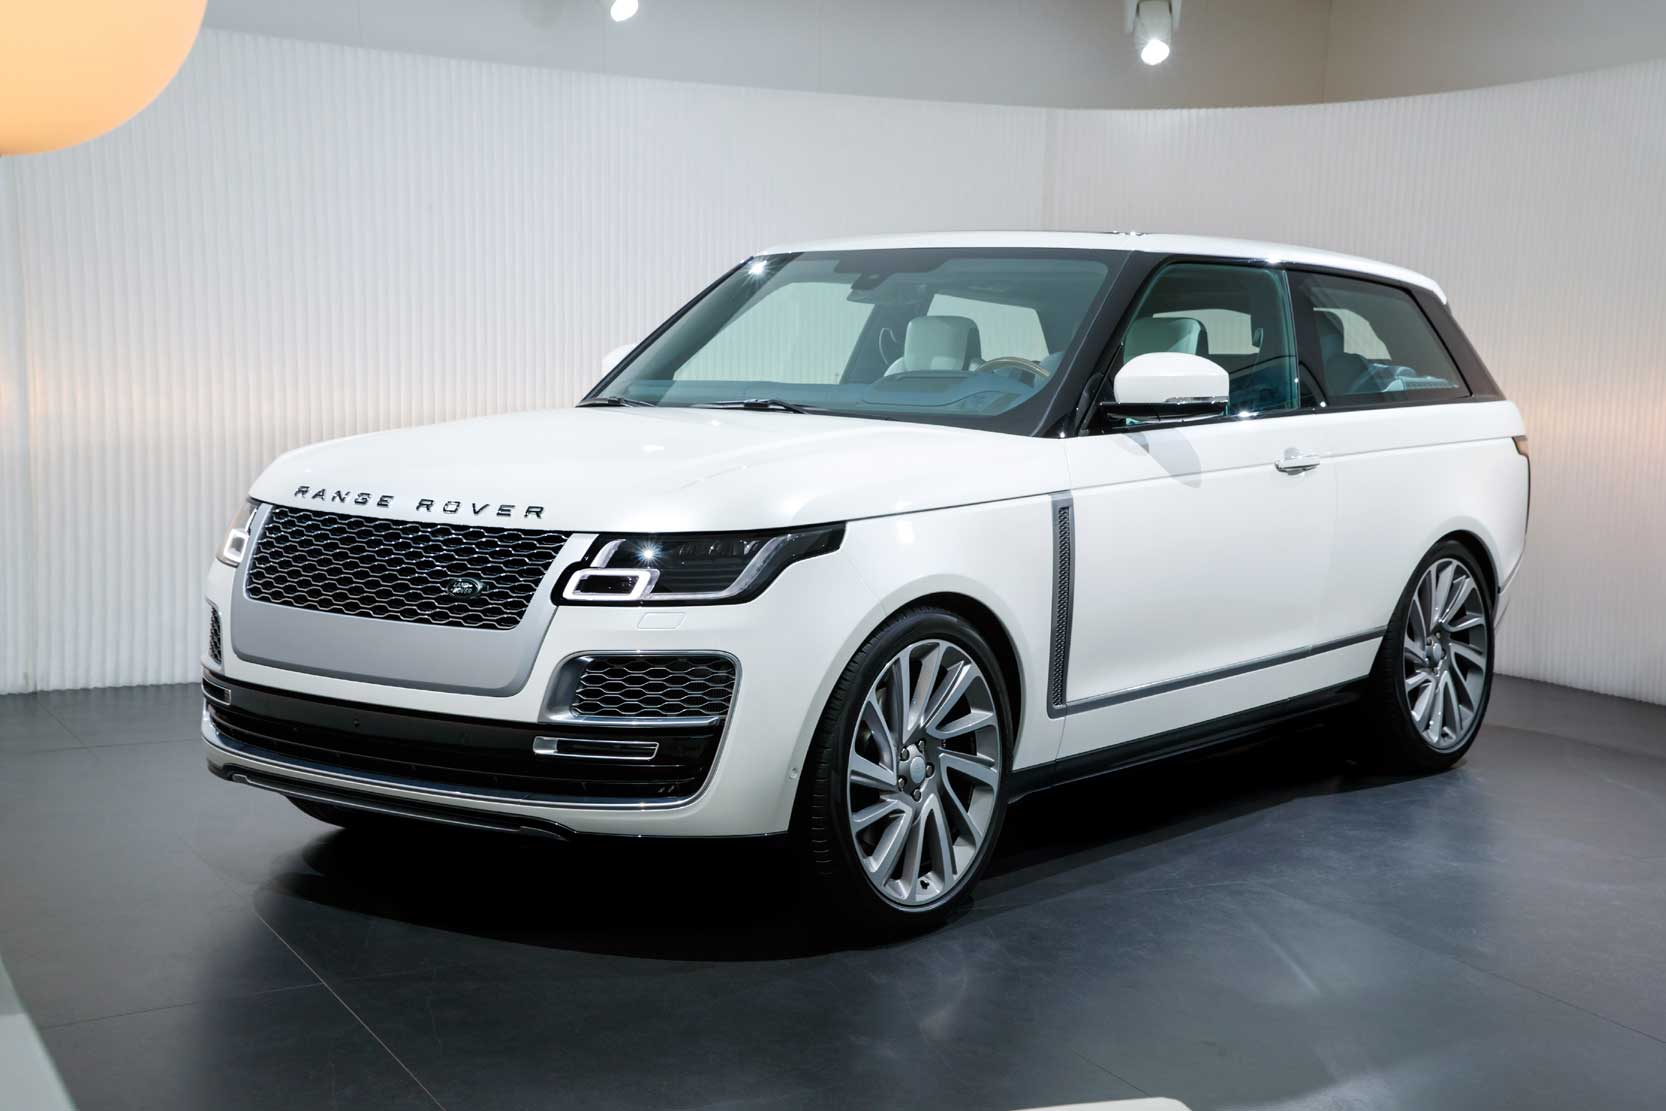 Exterieur_Land-Rover-Range-Rover-SV-Coupe_6